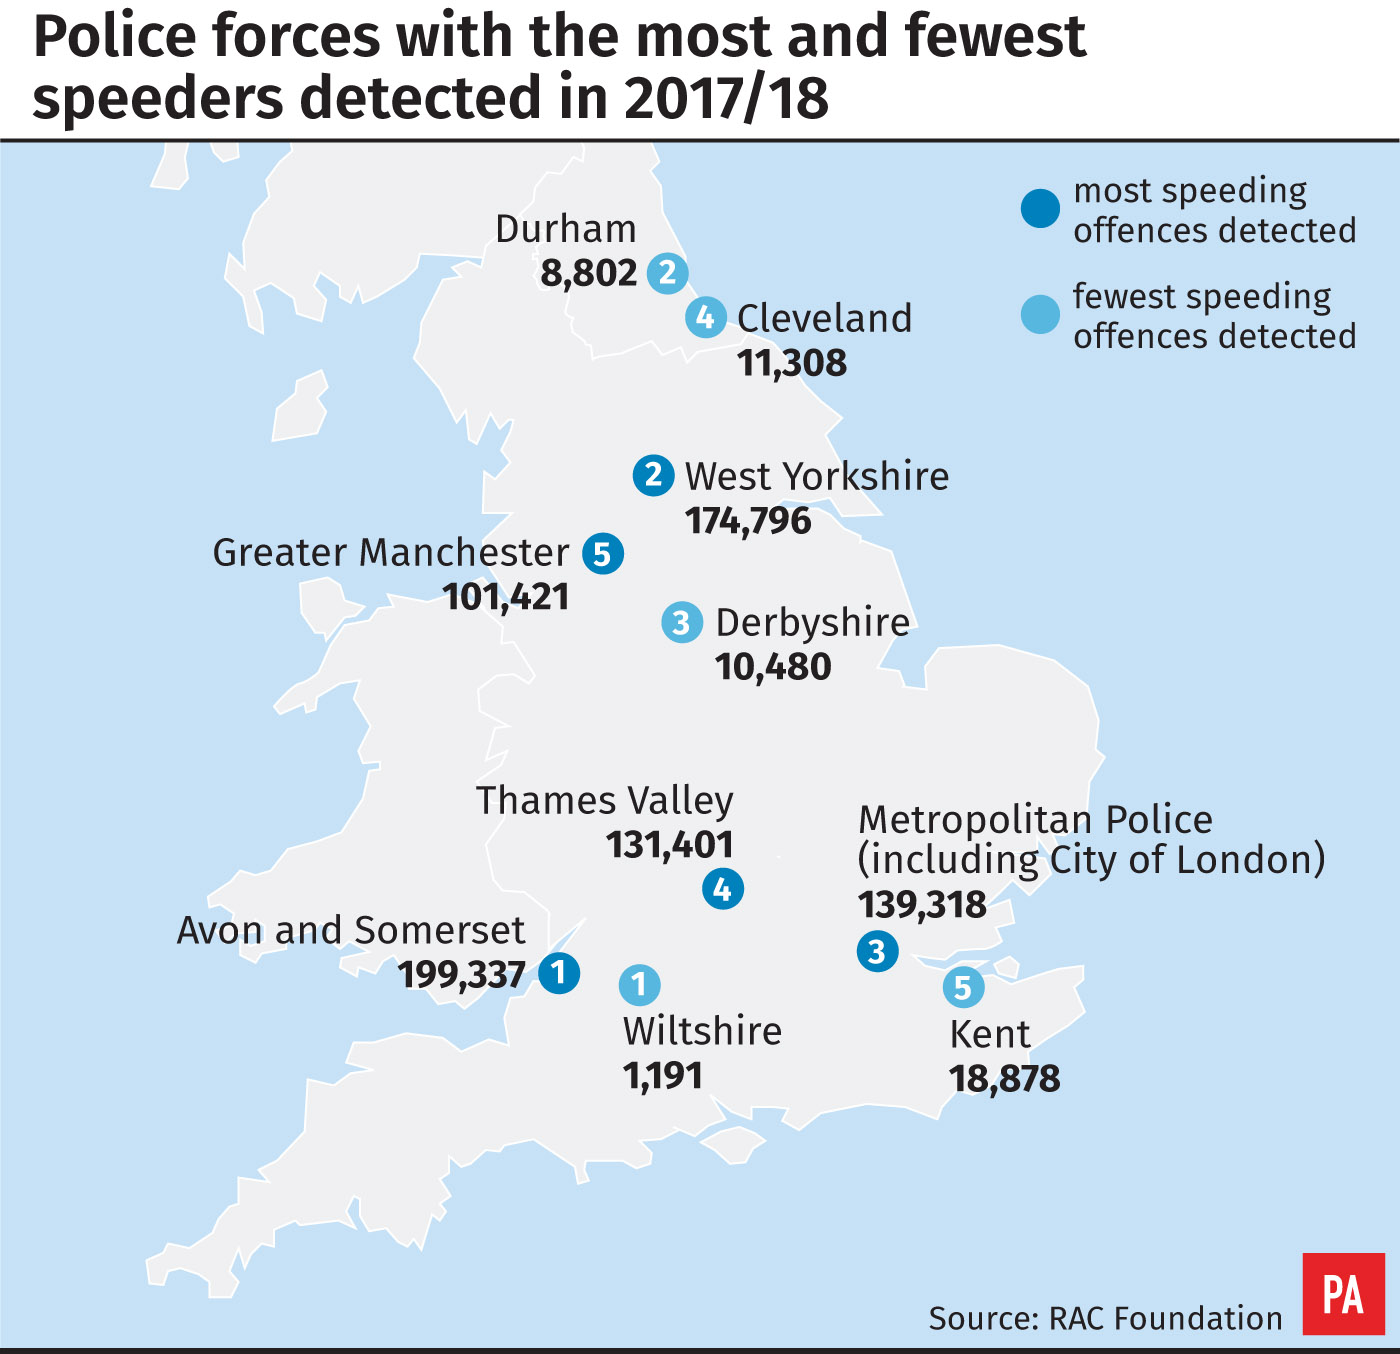 Police forces with the most and fewest speeders detected